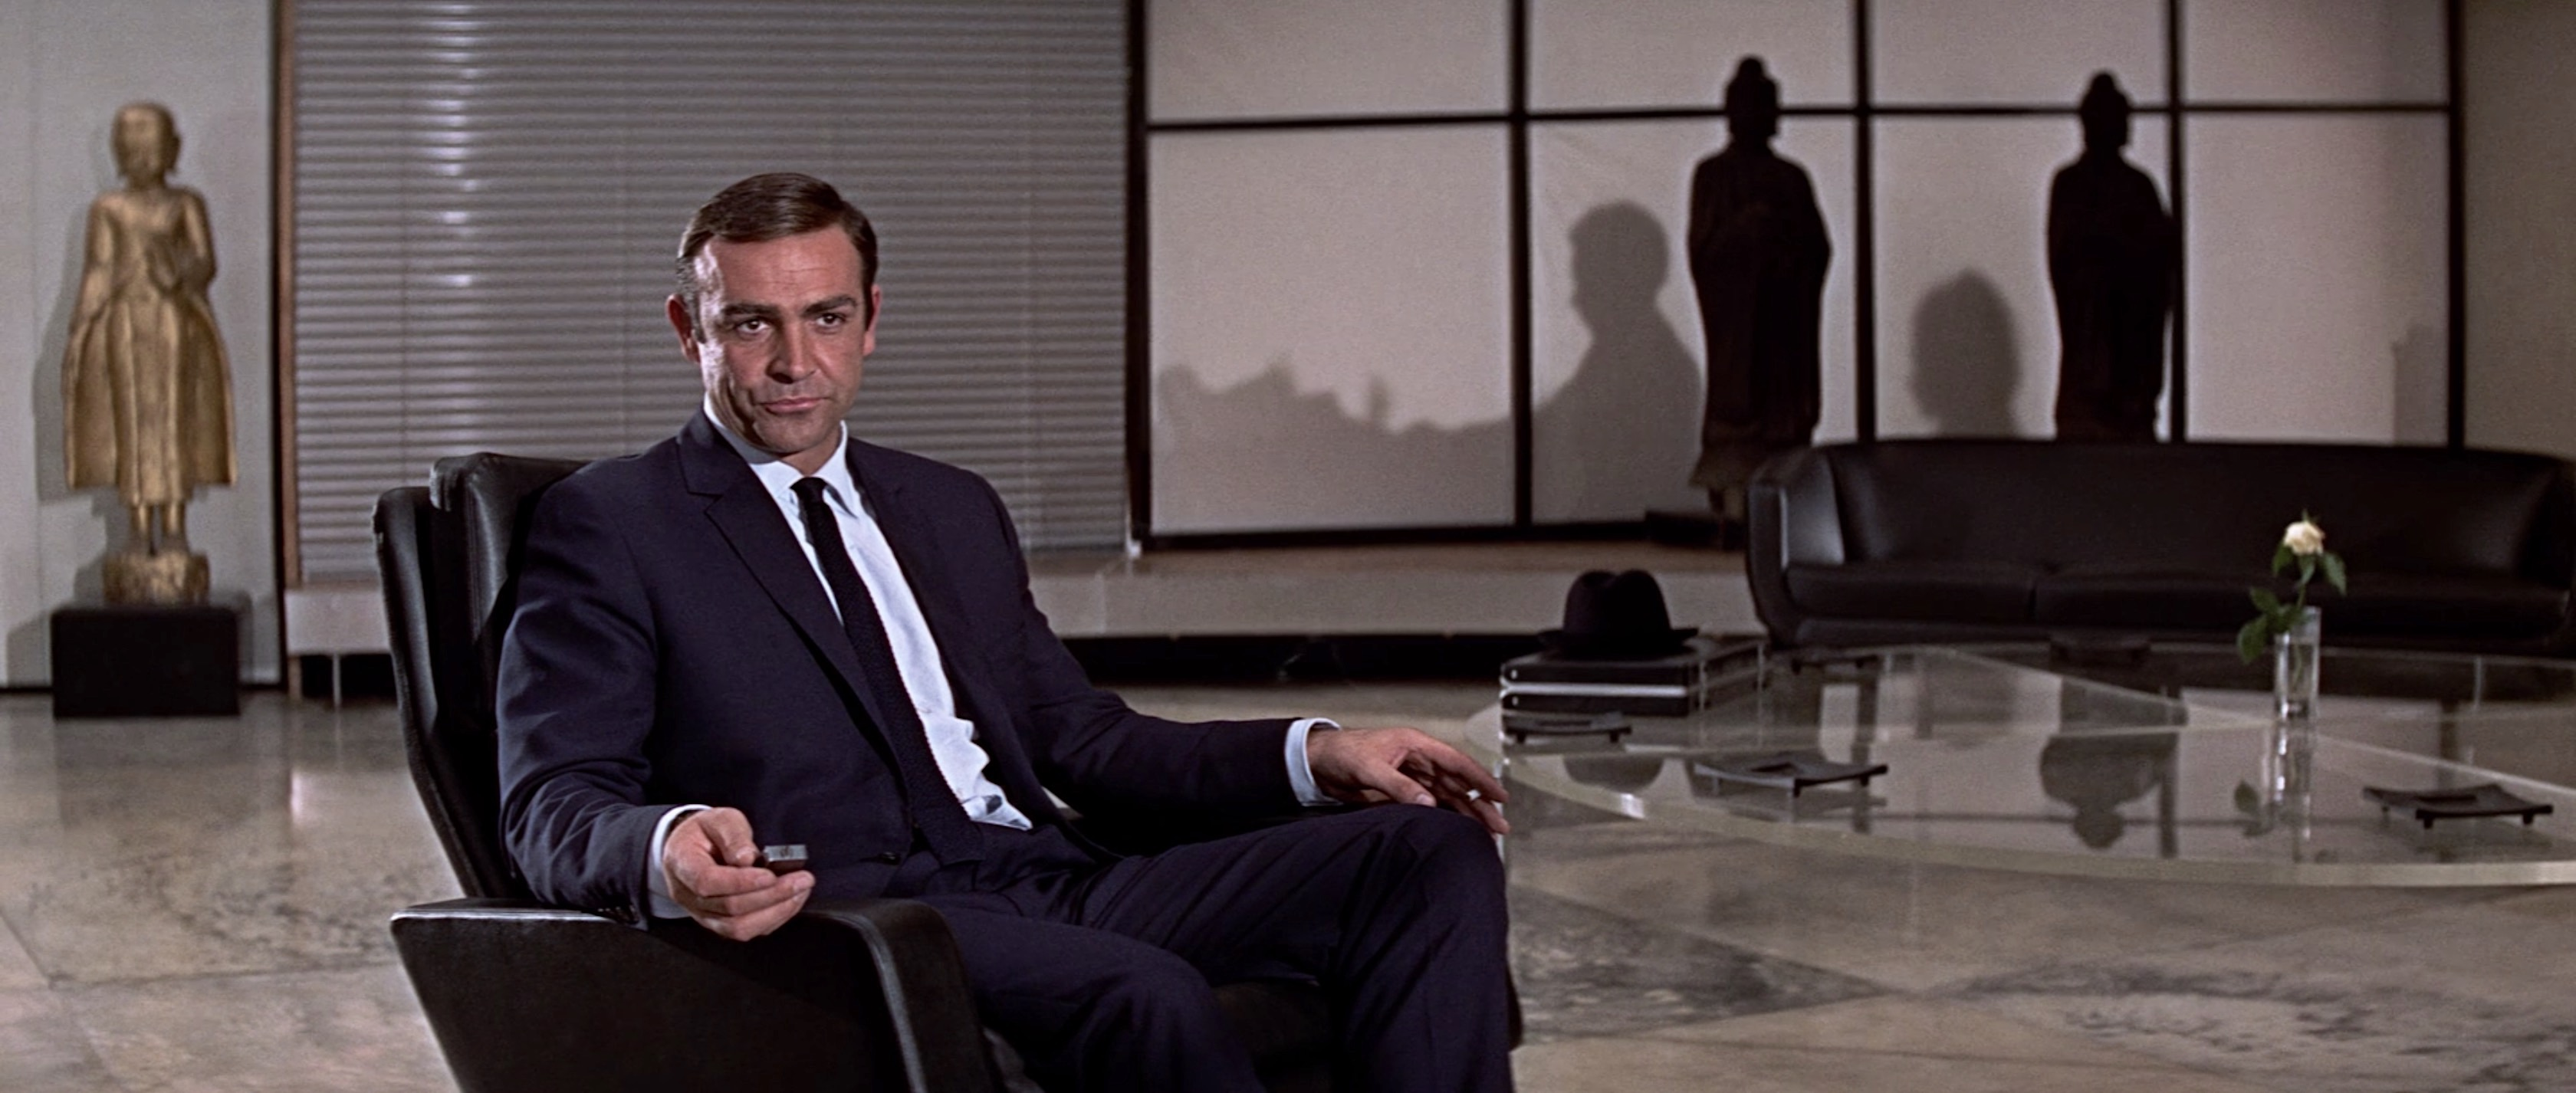 You Only Live Twice: Bond's Blue Suit in Japan » BAMF Style